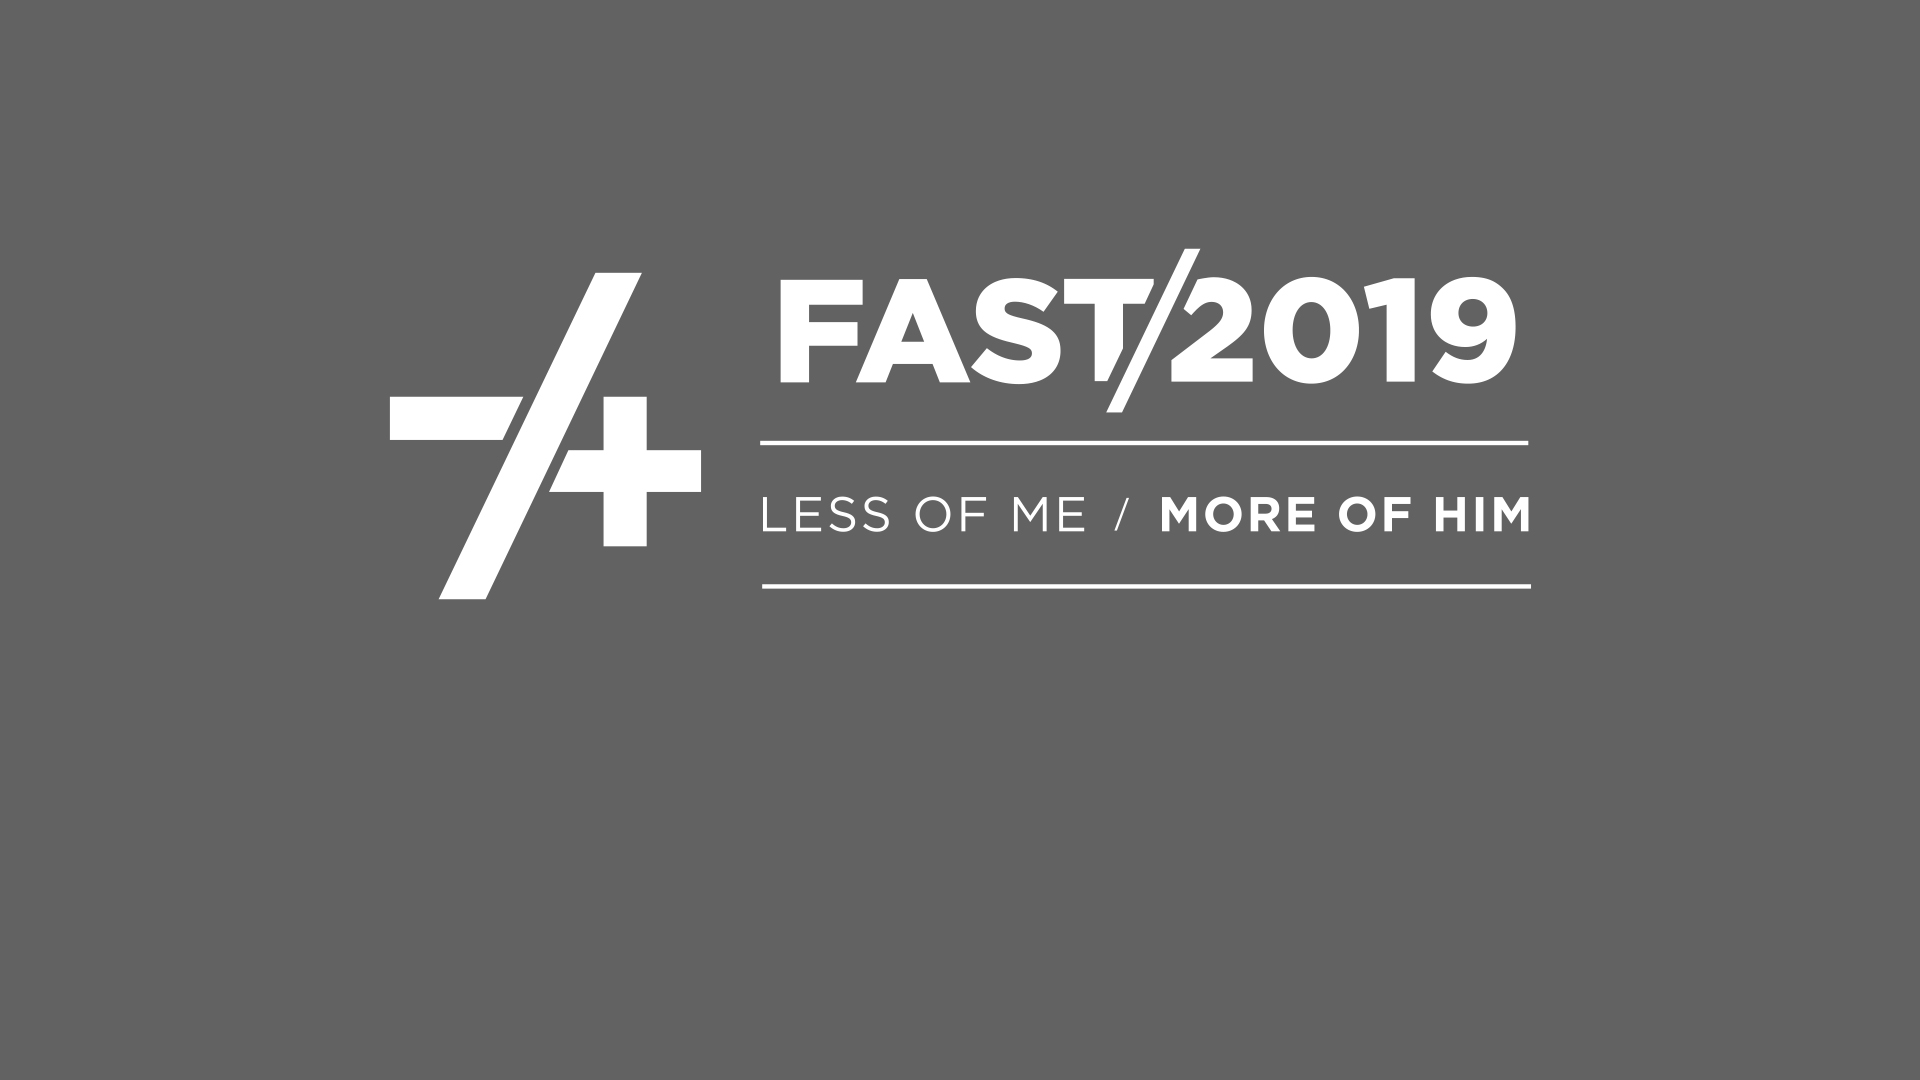 Join us for our annual fast Sunday January 6th to Sunday January 27th. Come and learn each Sunday how fasting decreases our selfish nature and increases the presence of God in our lives.